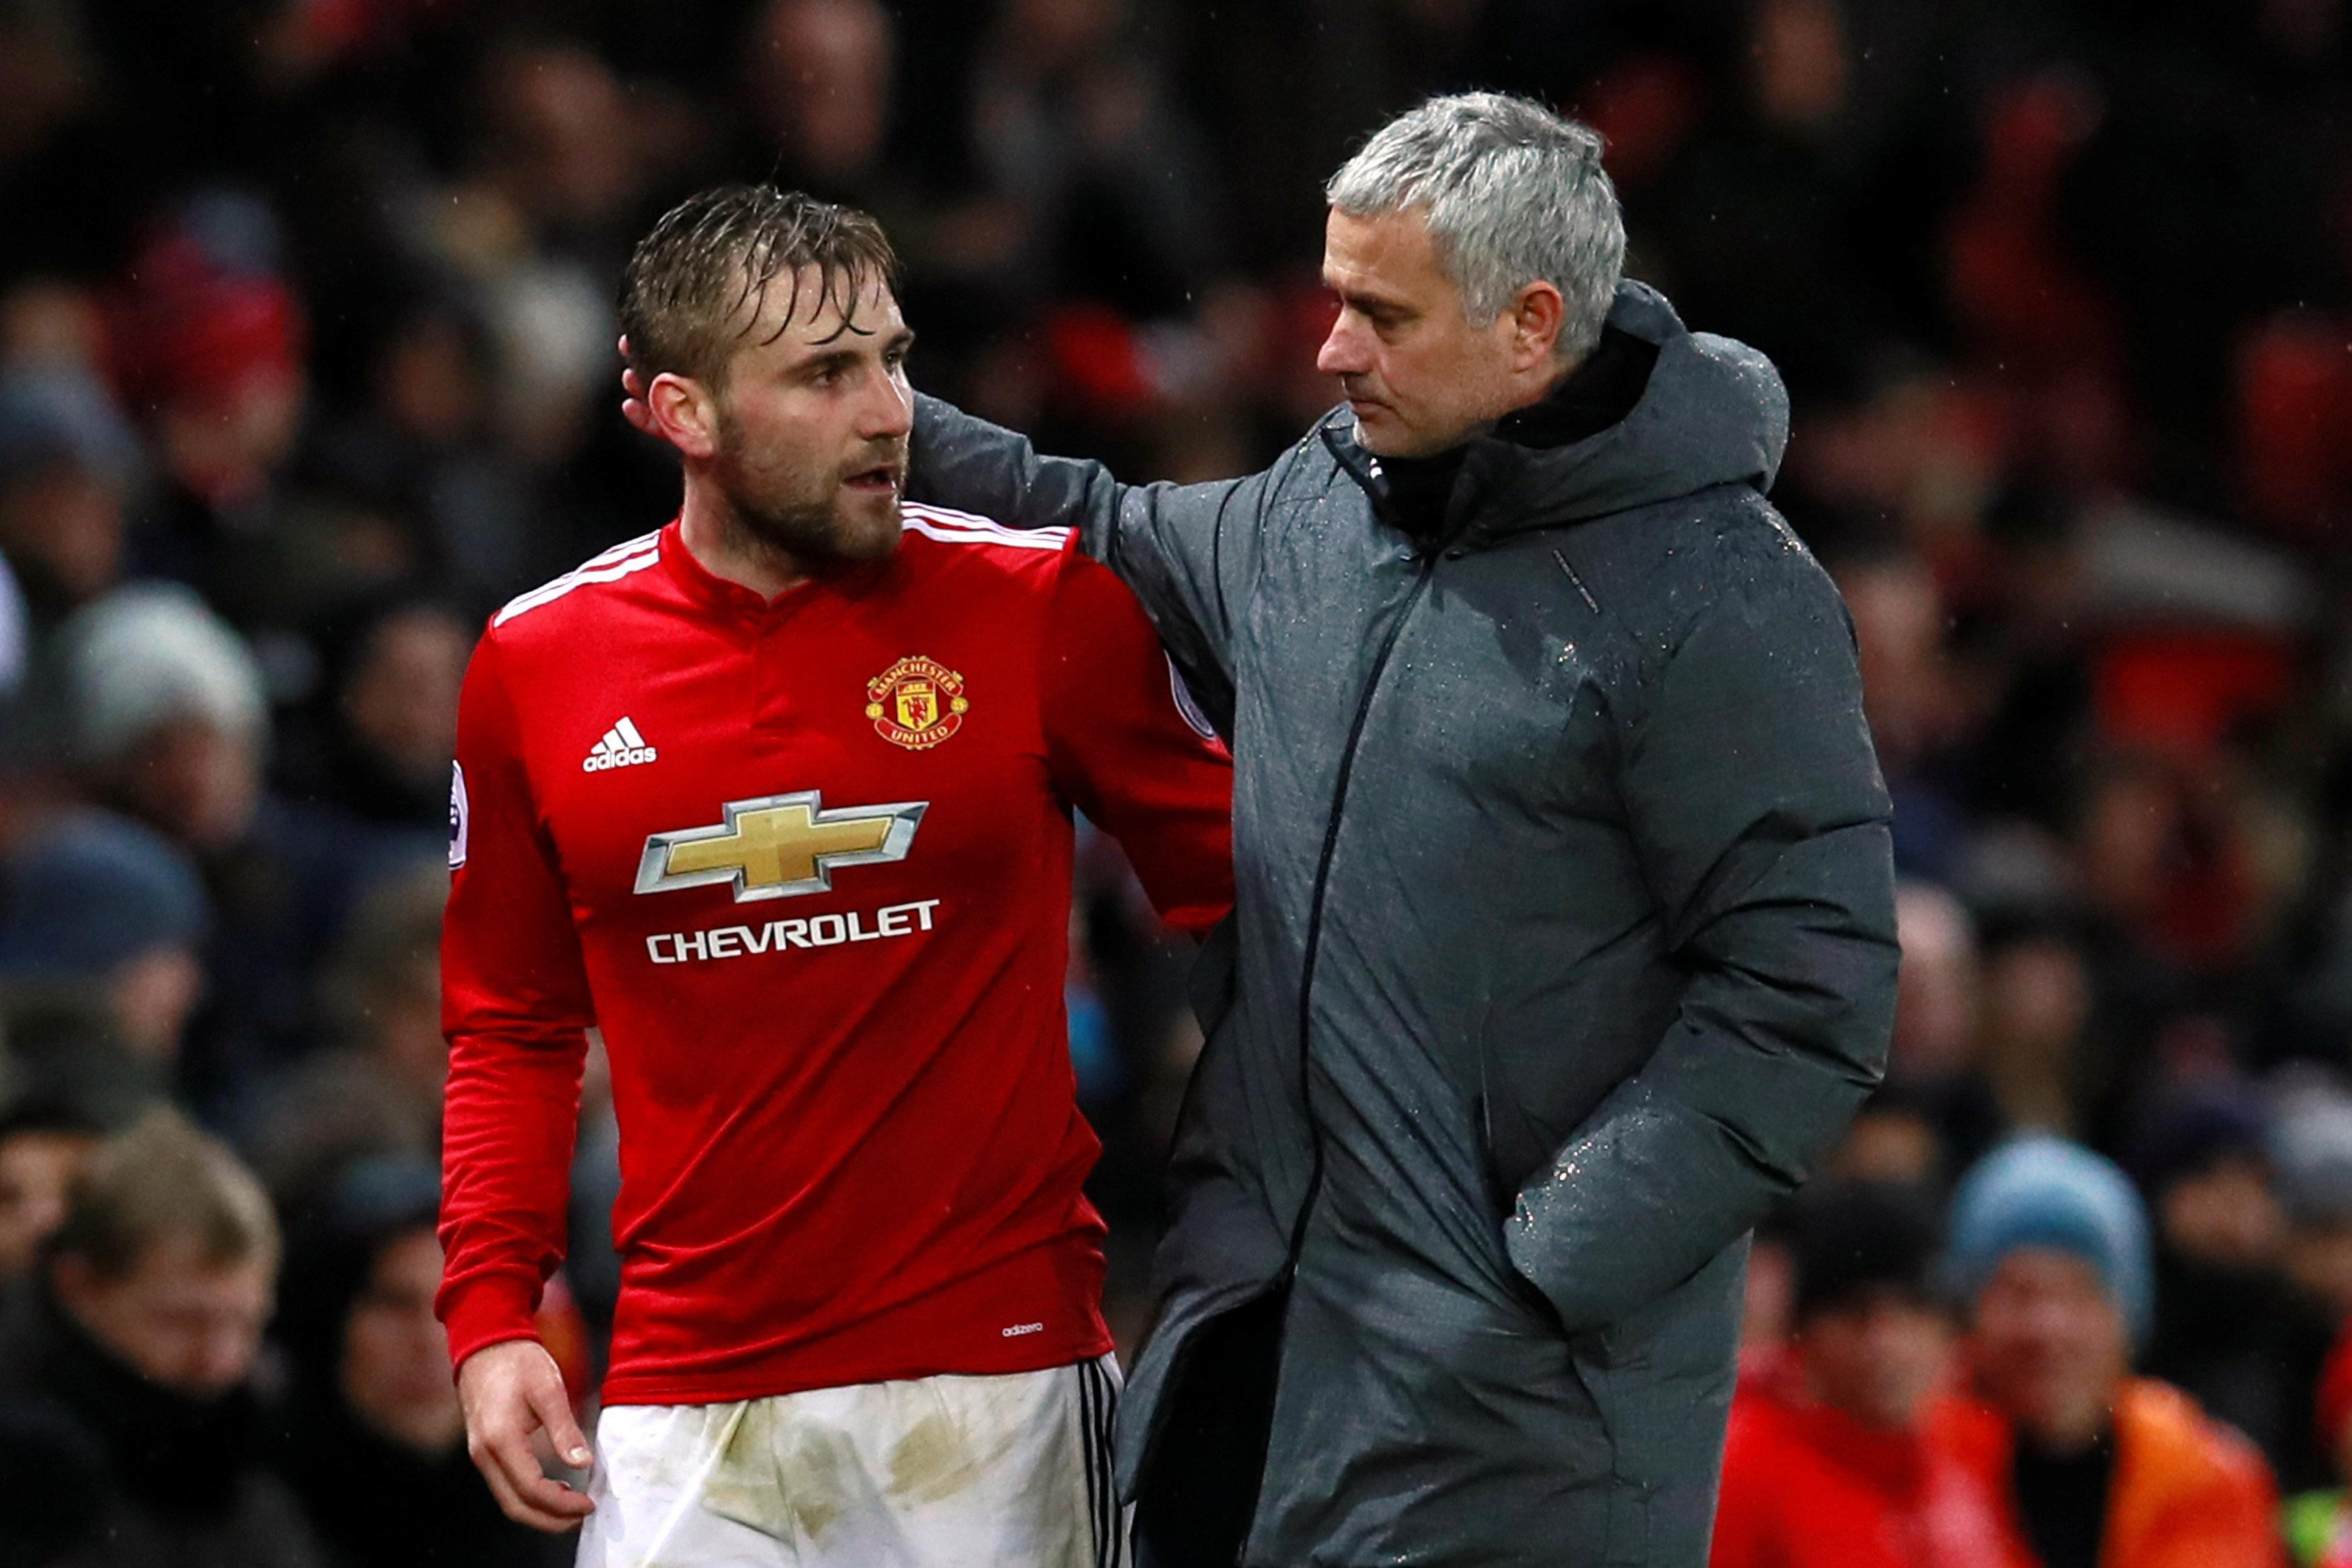 Jose Mourinho criticises Luke Shaw for Manchester United performance against Brighton after hauling him off at half-time